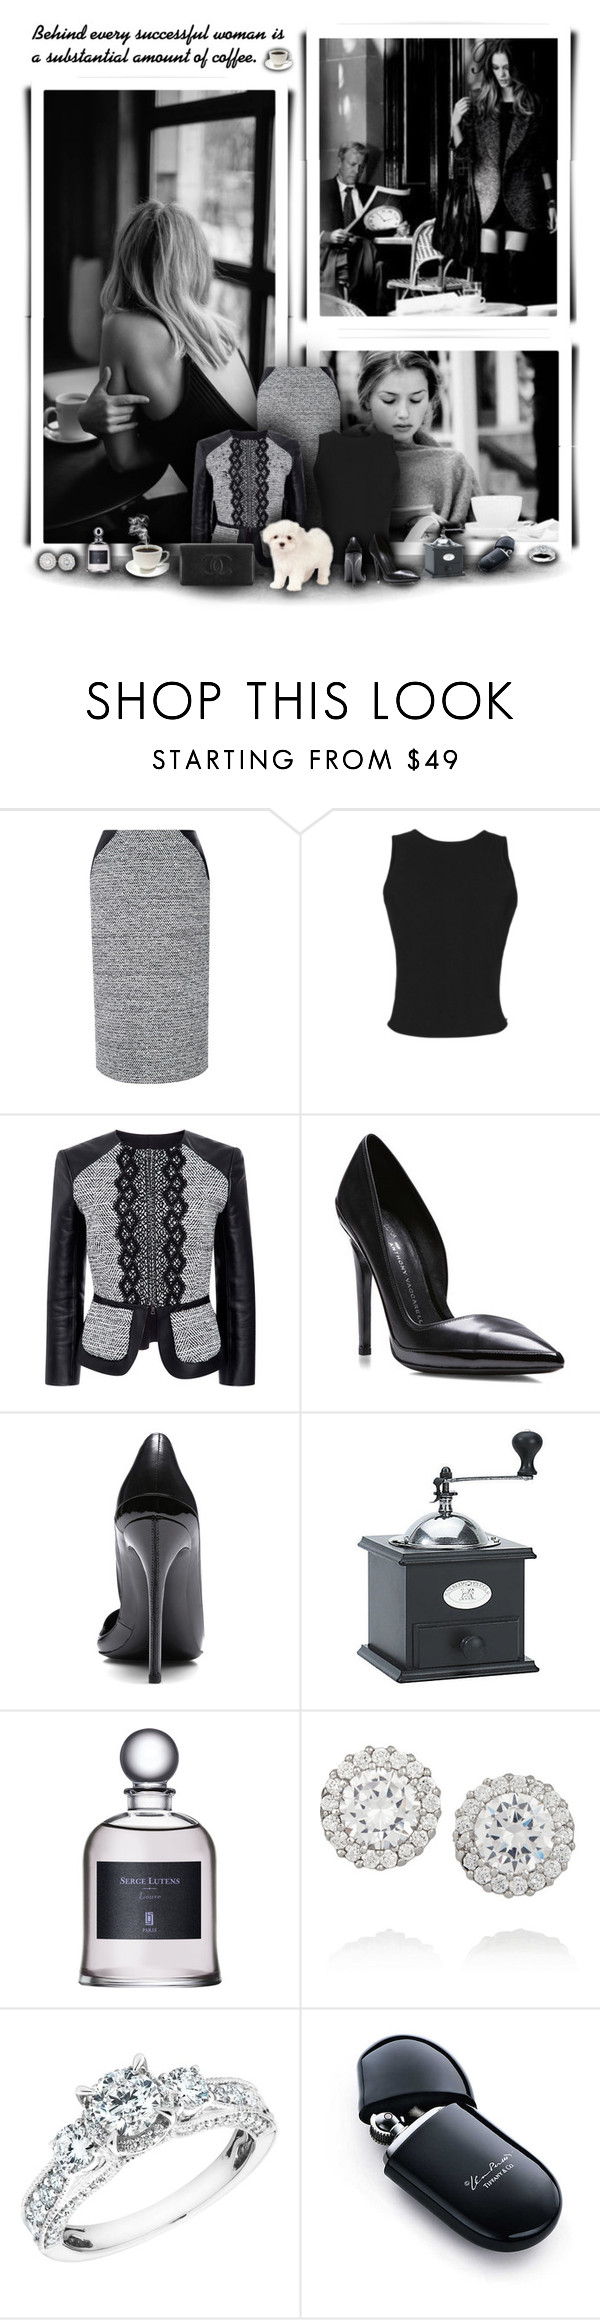 """""""Black and White Cafe"""" by rachelegance ❤ liked on Polyvore featuring Oscar de la Renta, Martin Grant, Anthony Vaccarello, Peugeot, Chanel, Kenneth Jay Lane, Reeds Jewelers and Elsa Peretti"""